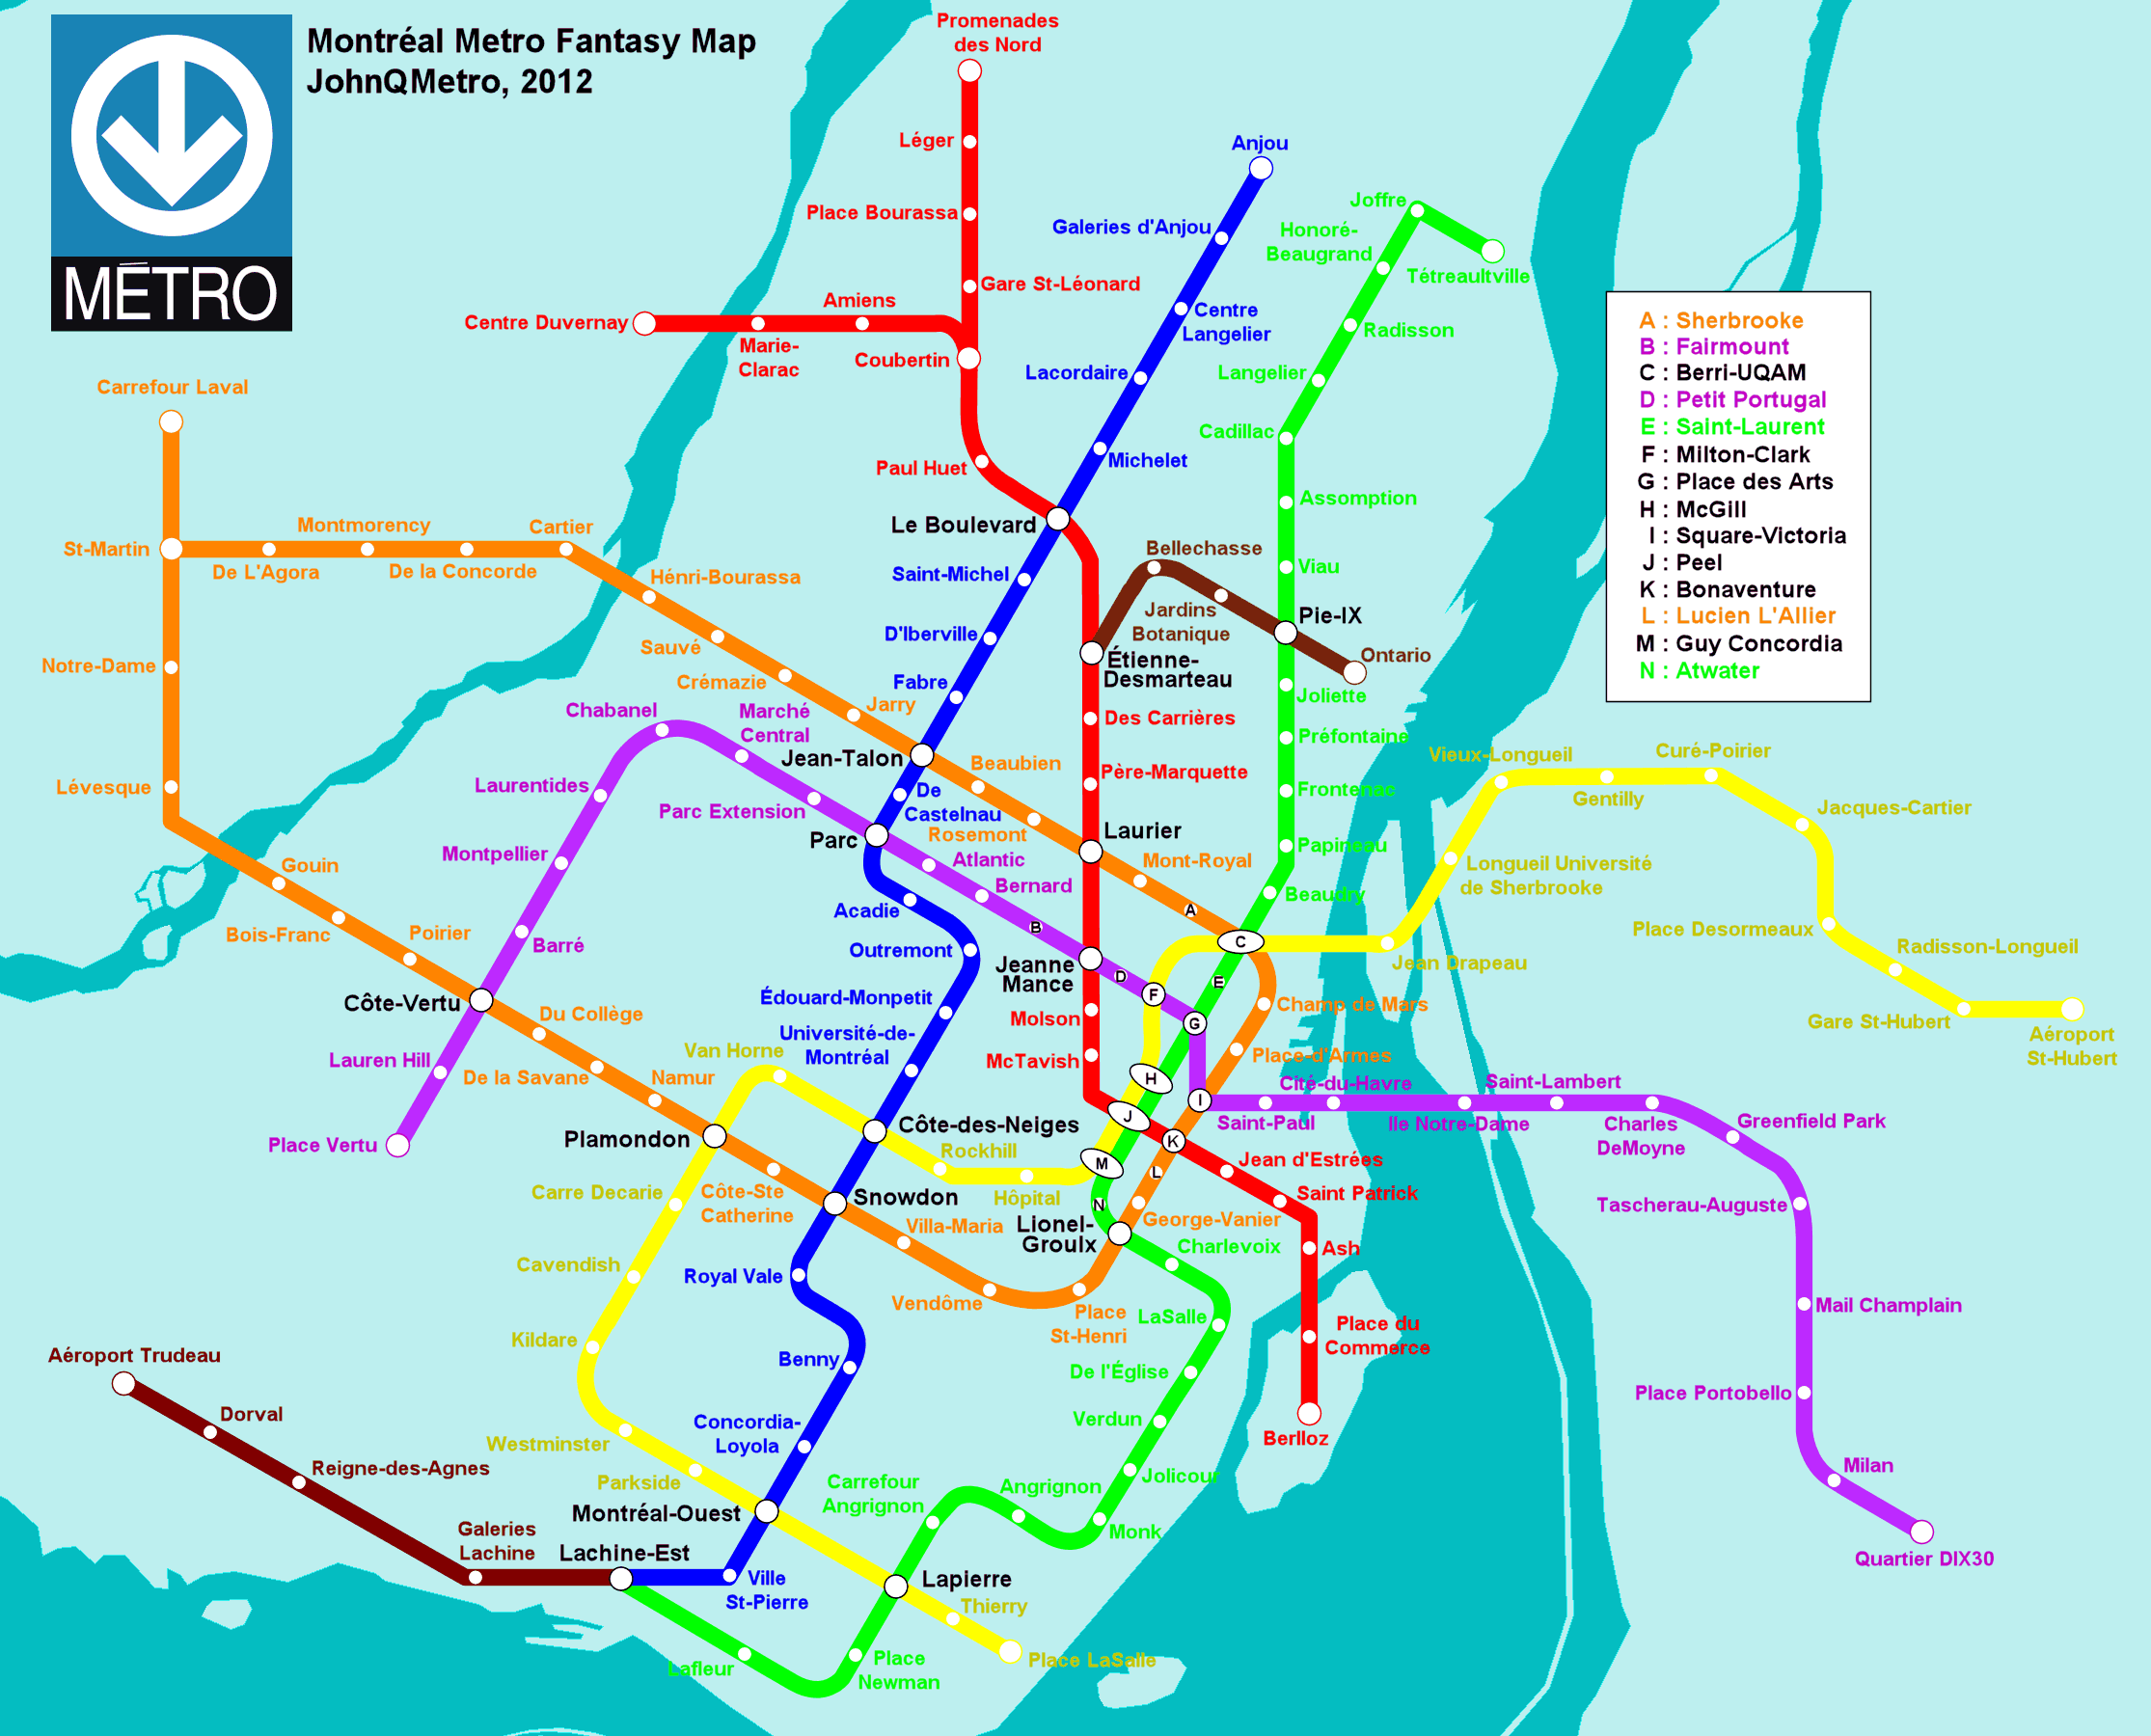 Montreal Canada Fantasy Metro Rail System Map By JohnQMetro - Quebec chicago map